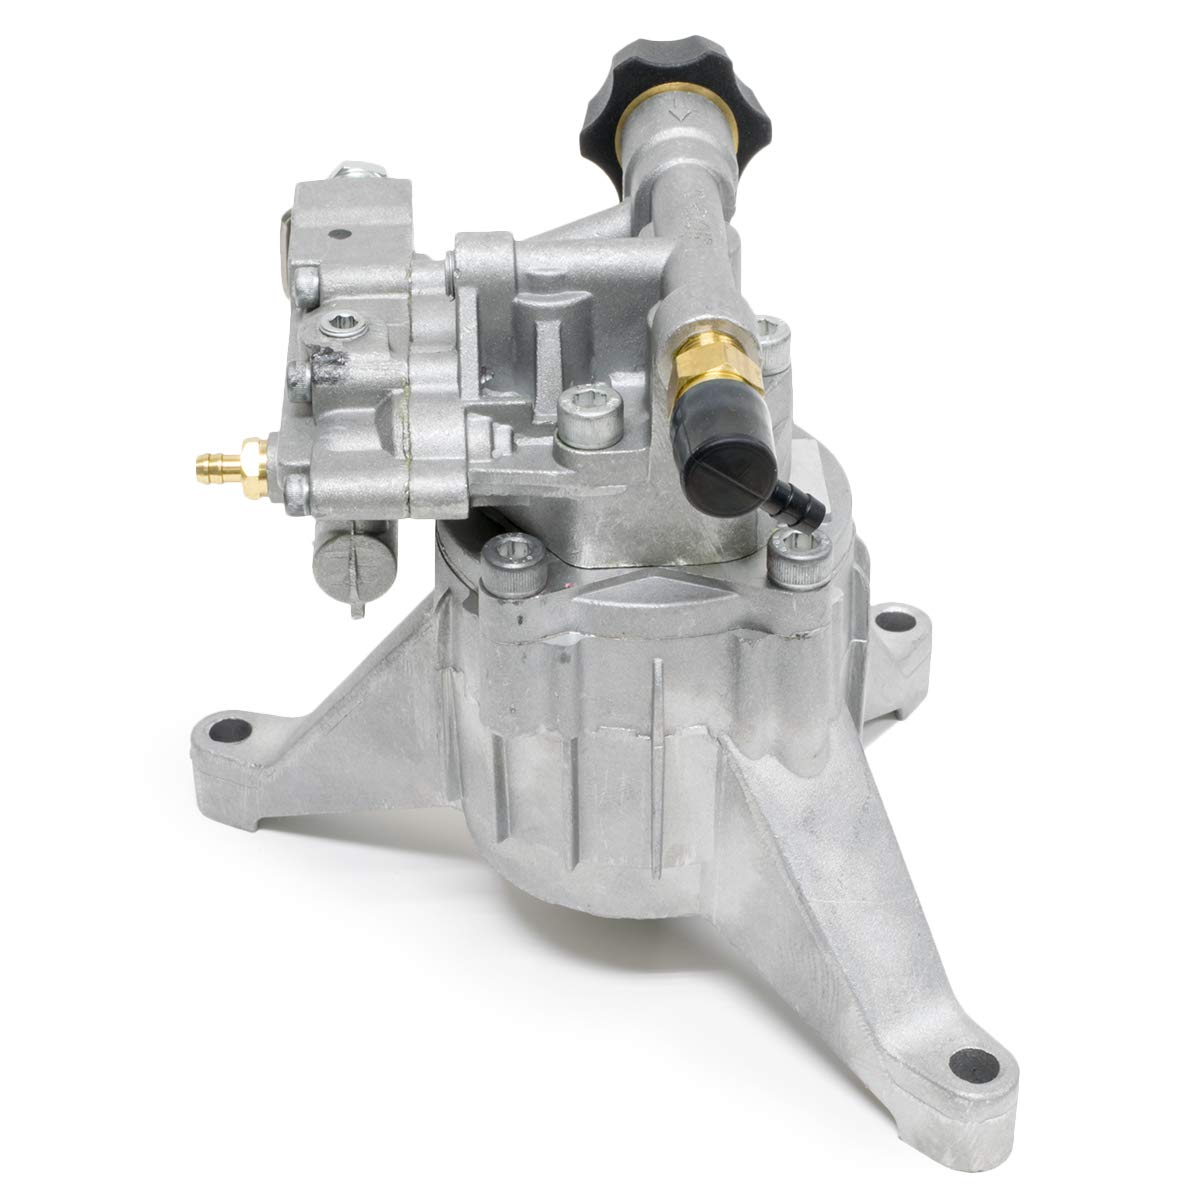 Universal 2800 PSI 2.5 GPM Power Pressure Washer Water Pump Replaces Homelite 308653052